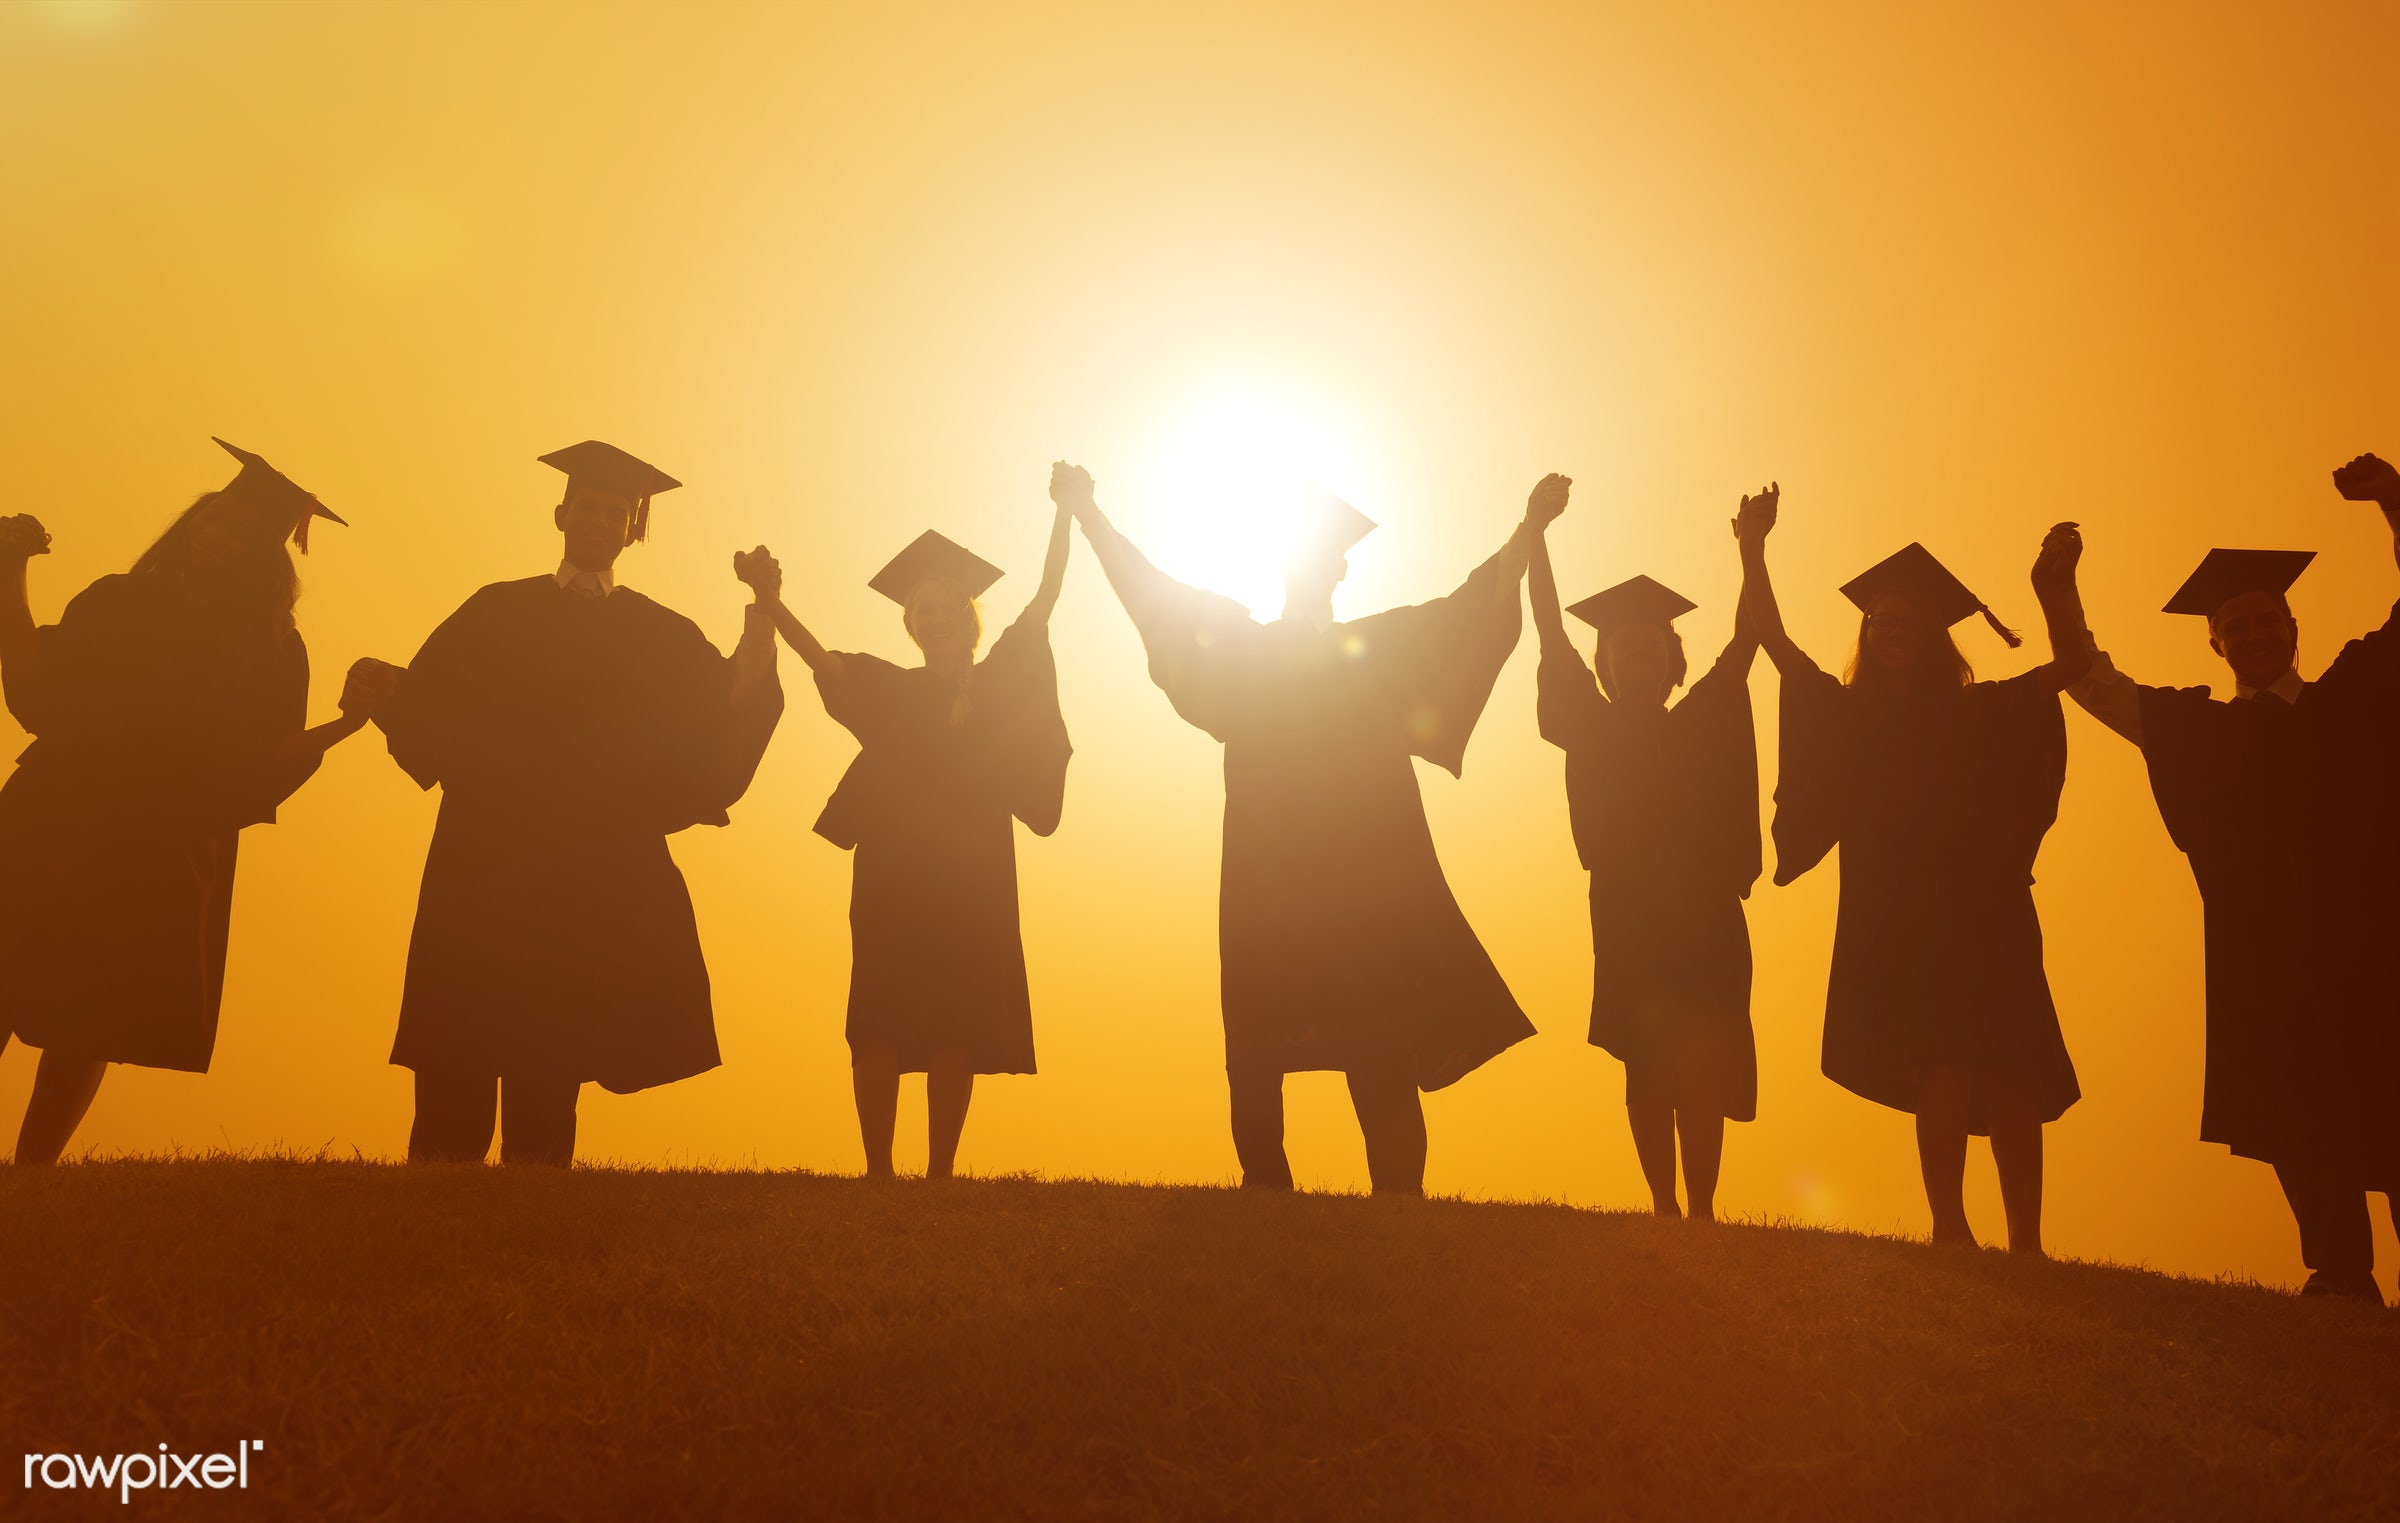 achievement, adult, arms outstretched, arms raised, celebration, celebration event, ceremony, cheerful, college student,...